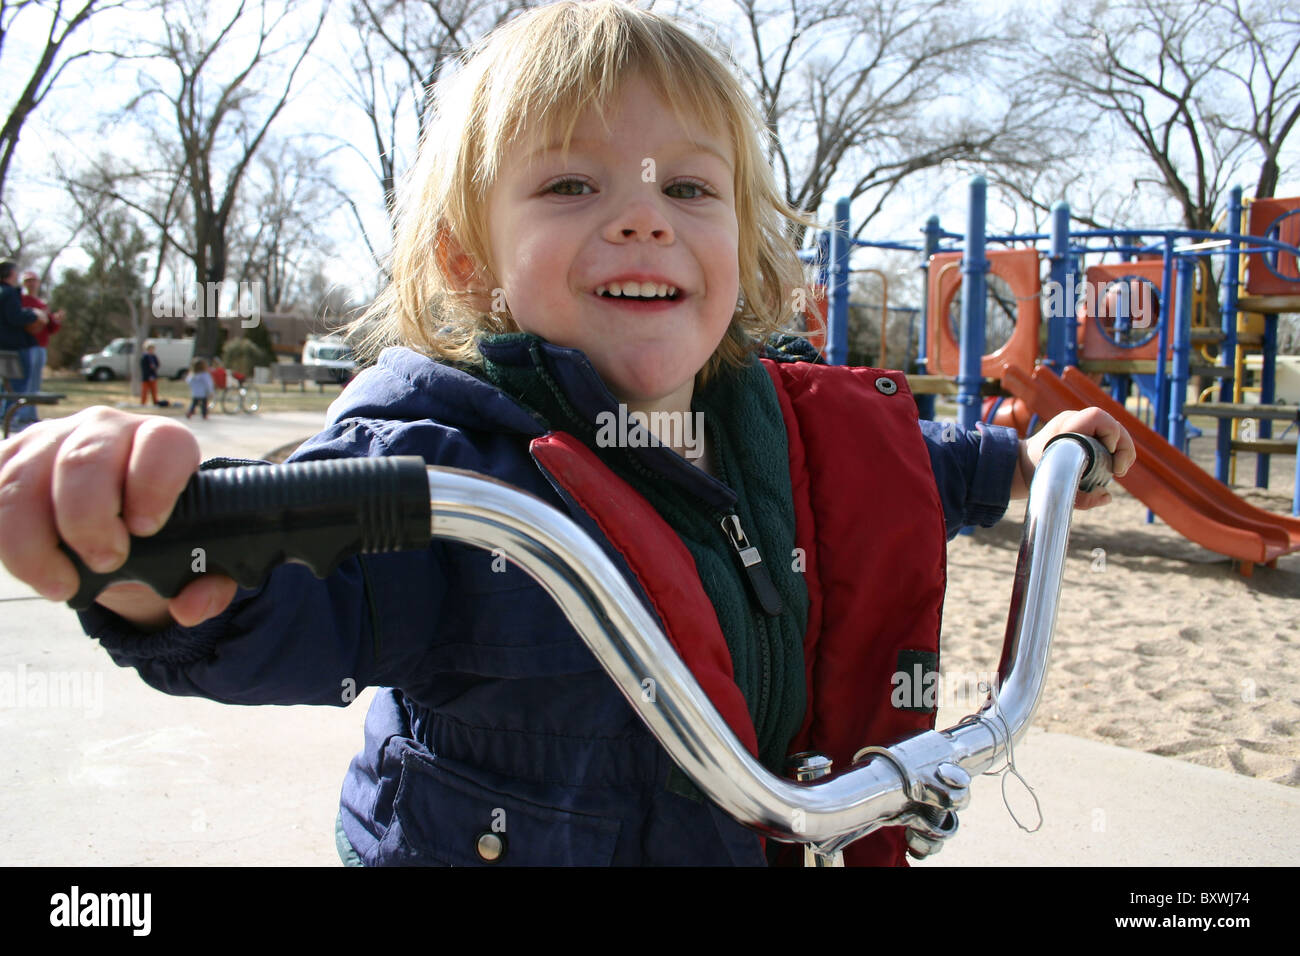 Two year old boy proudly riding a bicycle, holding large handle bars at a park. - Stock Image